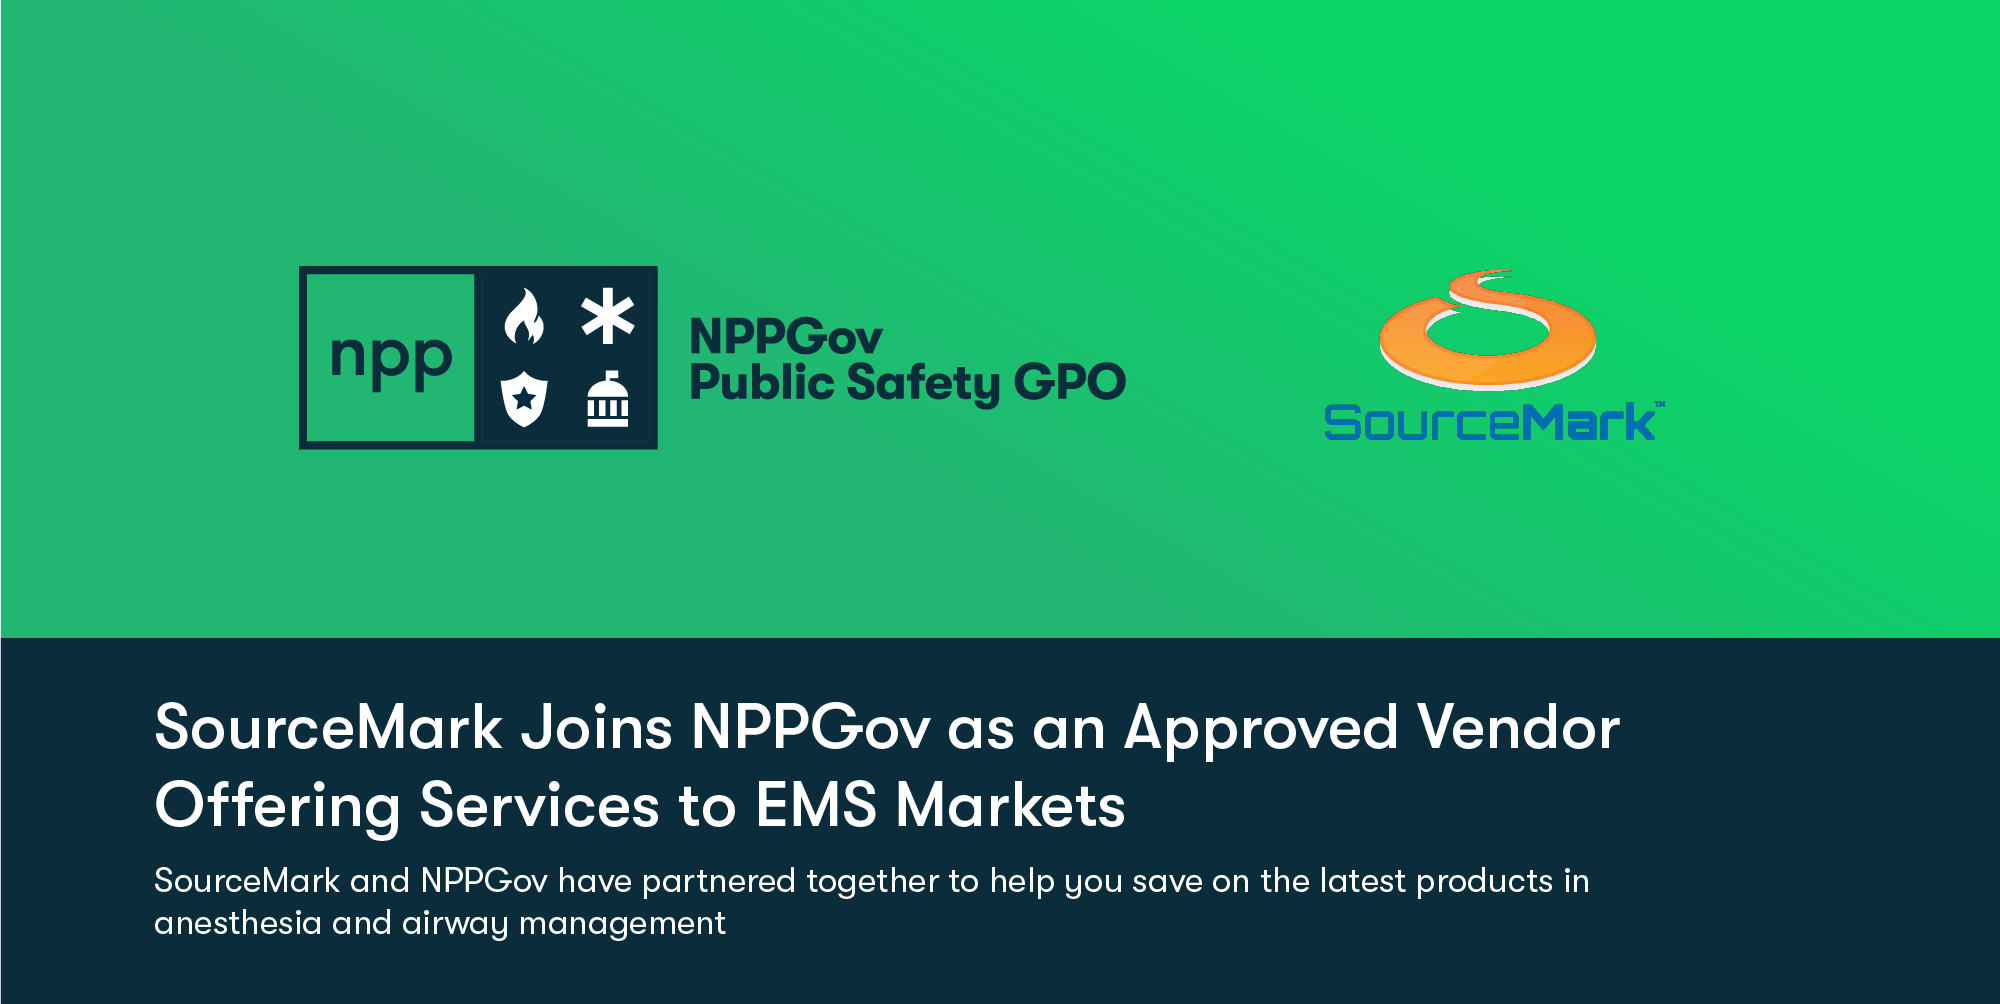 NPPGov Signs SourceMark as a Vendor for its GPO